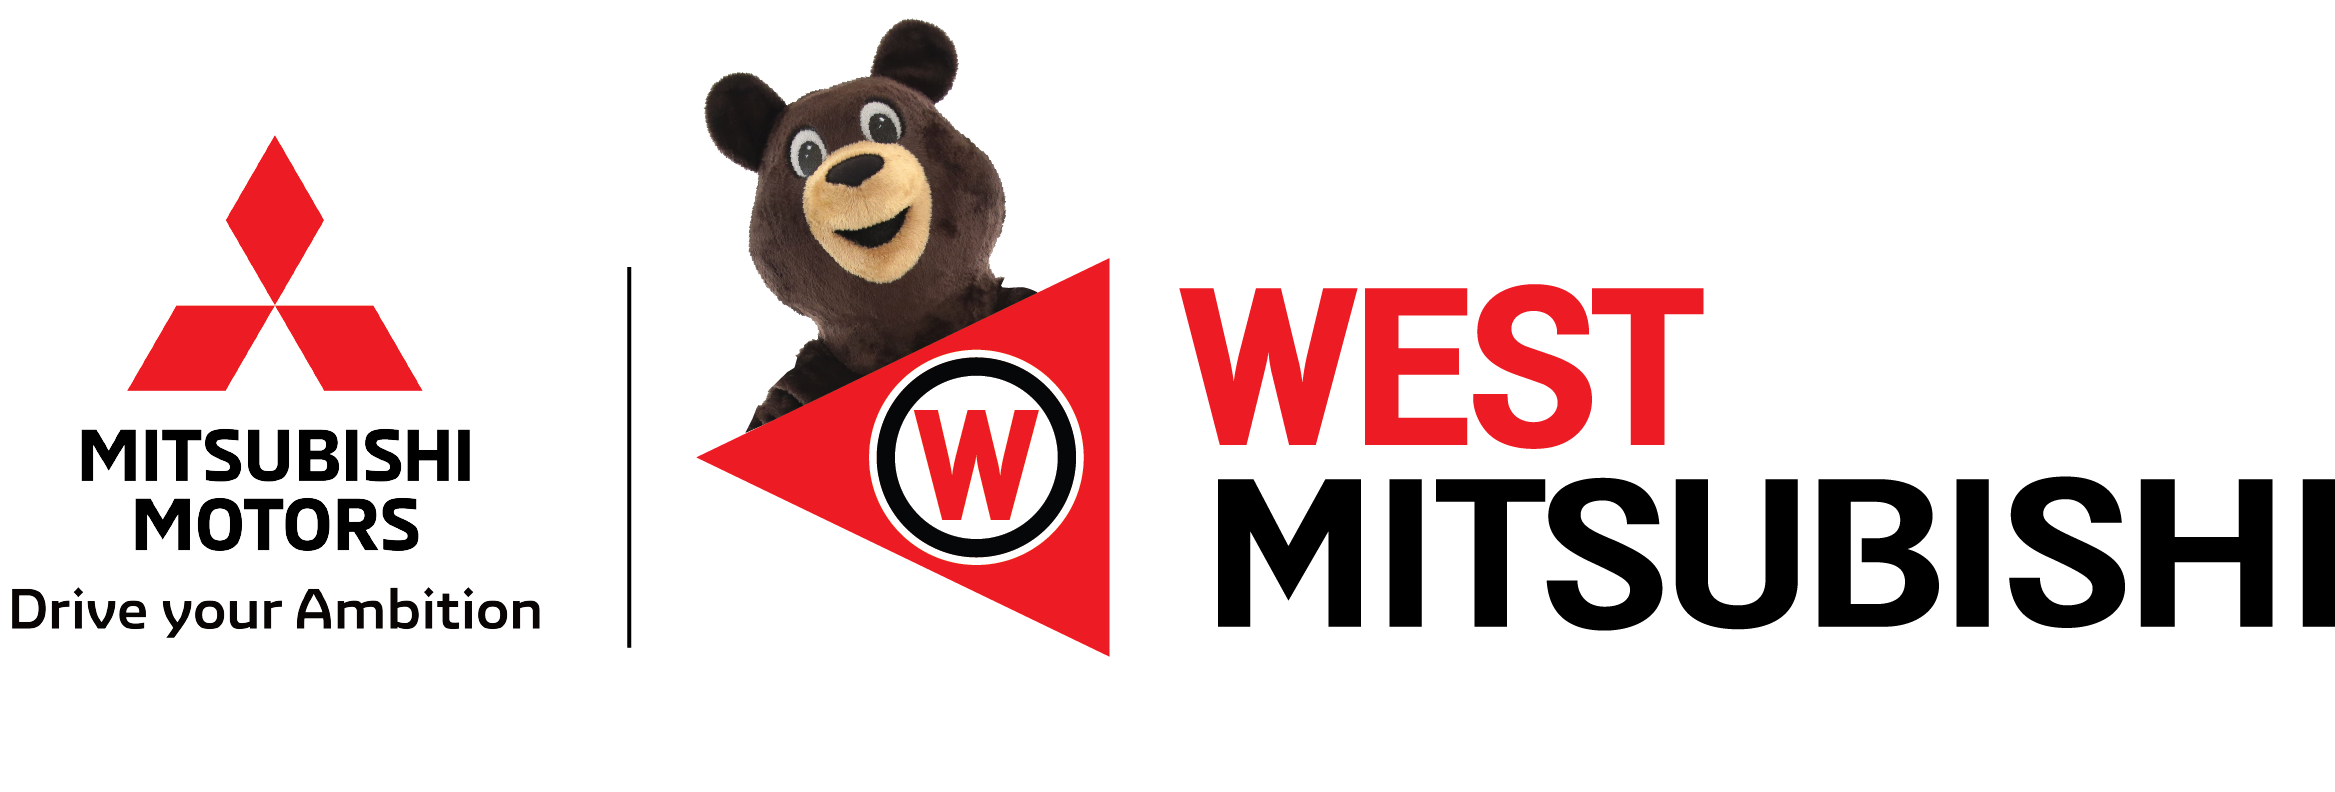 West Mitsubishi dealer logo